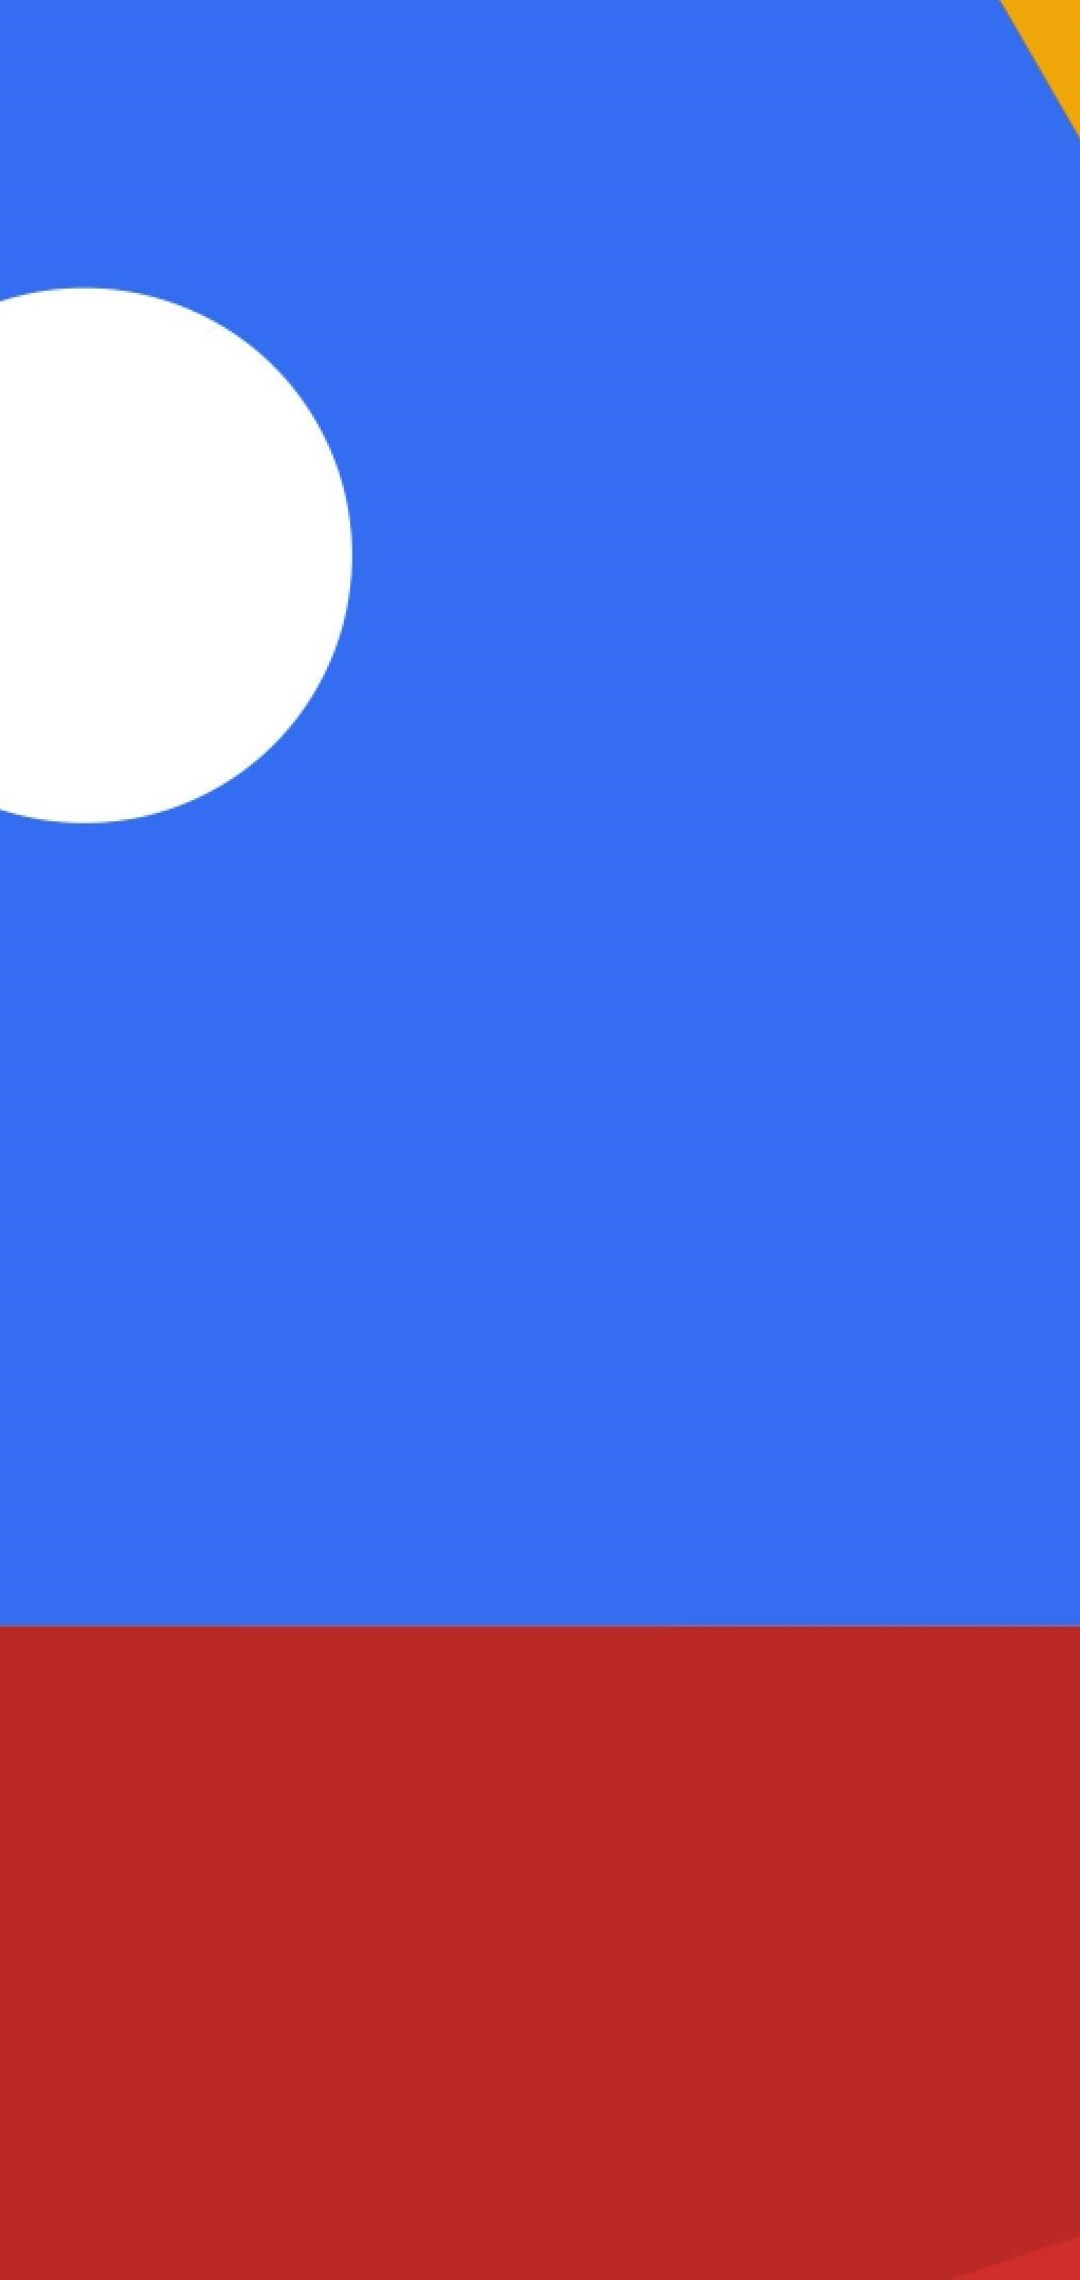 1080x2280 Google Cloud Logo 4k One Plus 6,Huawei p20,Honor